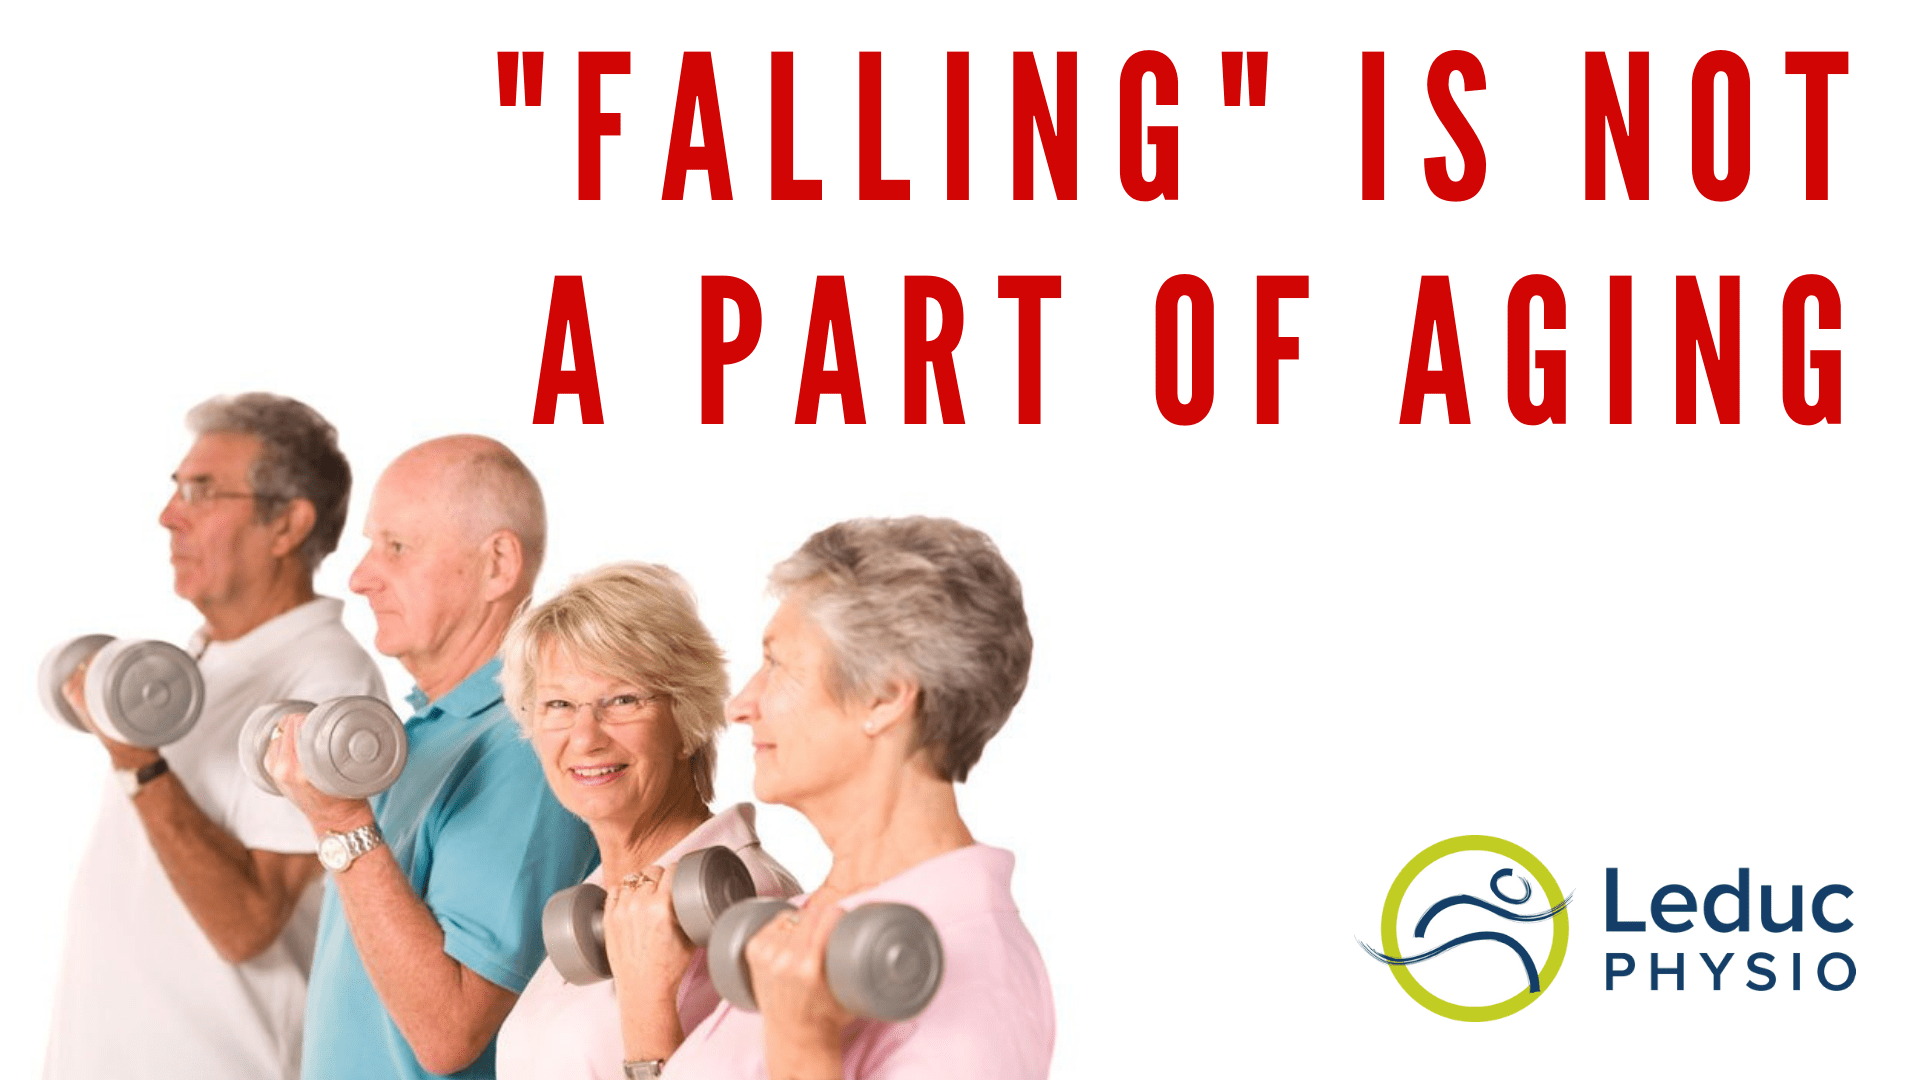 Newsletter-Image-for-Blog_Article Falls are not a part of aging